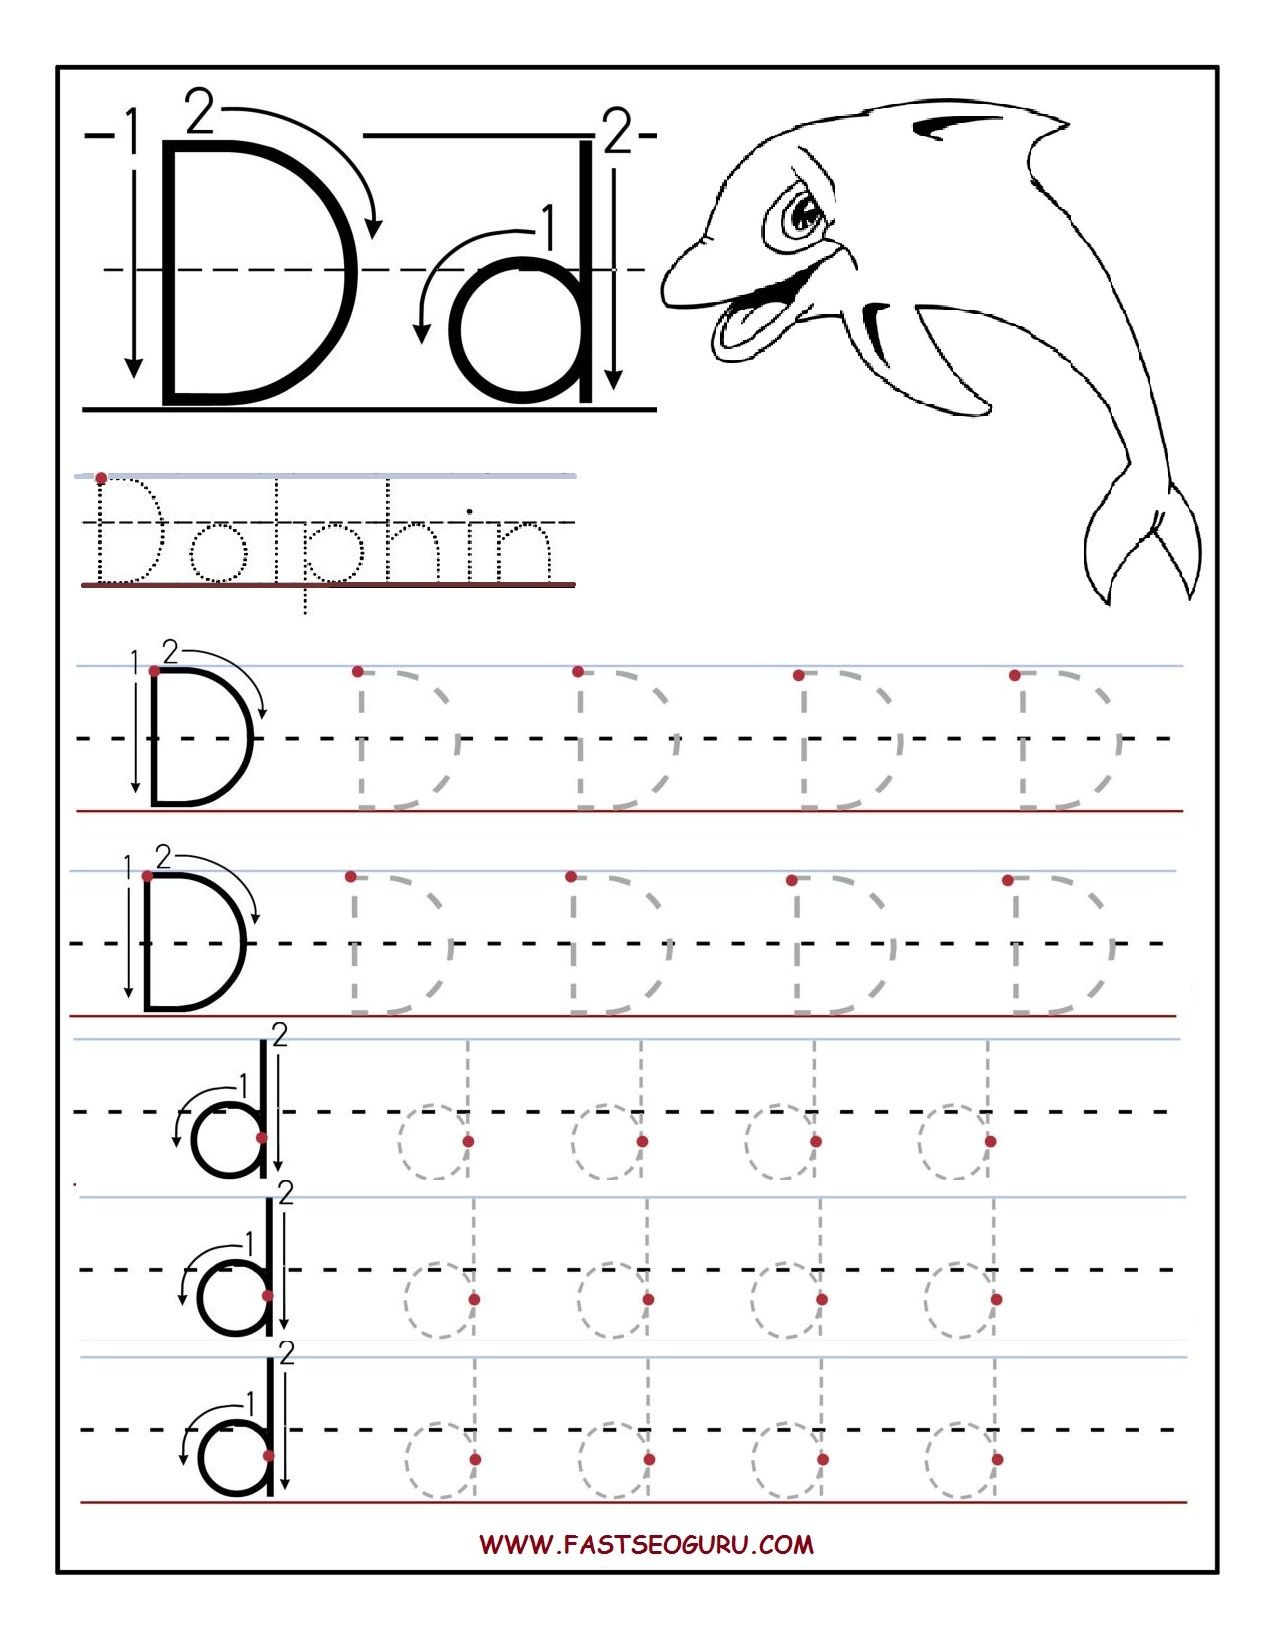 Worksheet Tracing Letters For Preschool 1000 images about worksheets on pinterest search printable letters and preschool worksheets